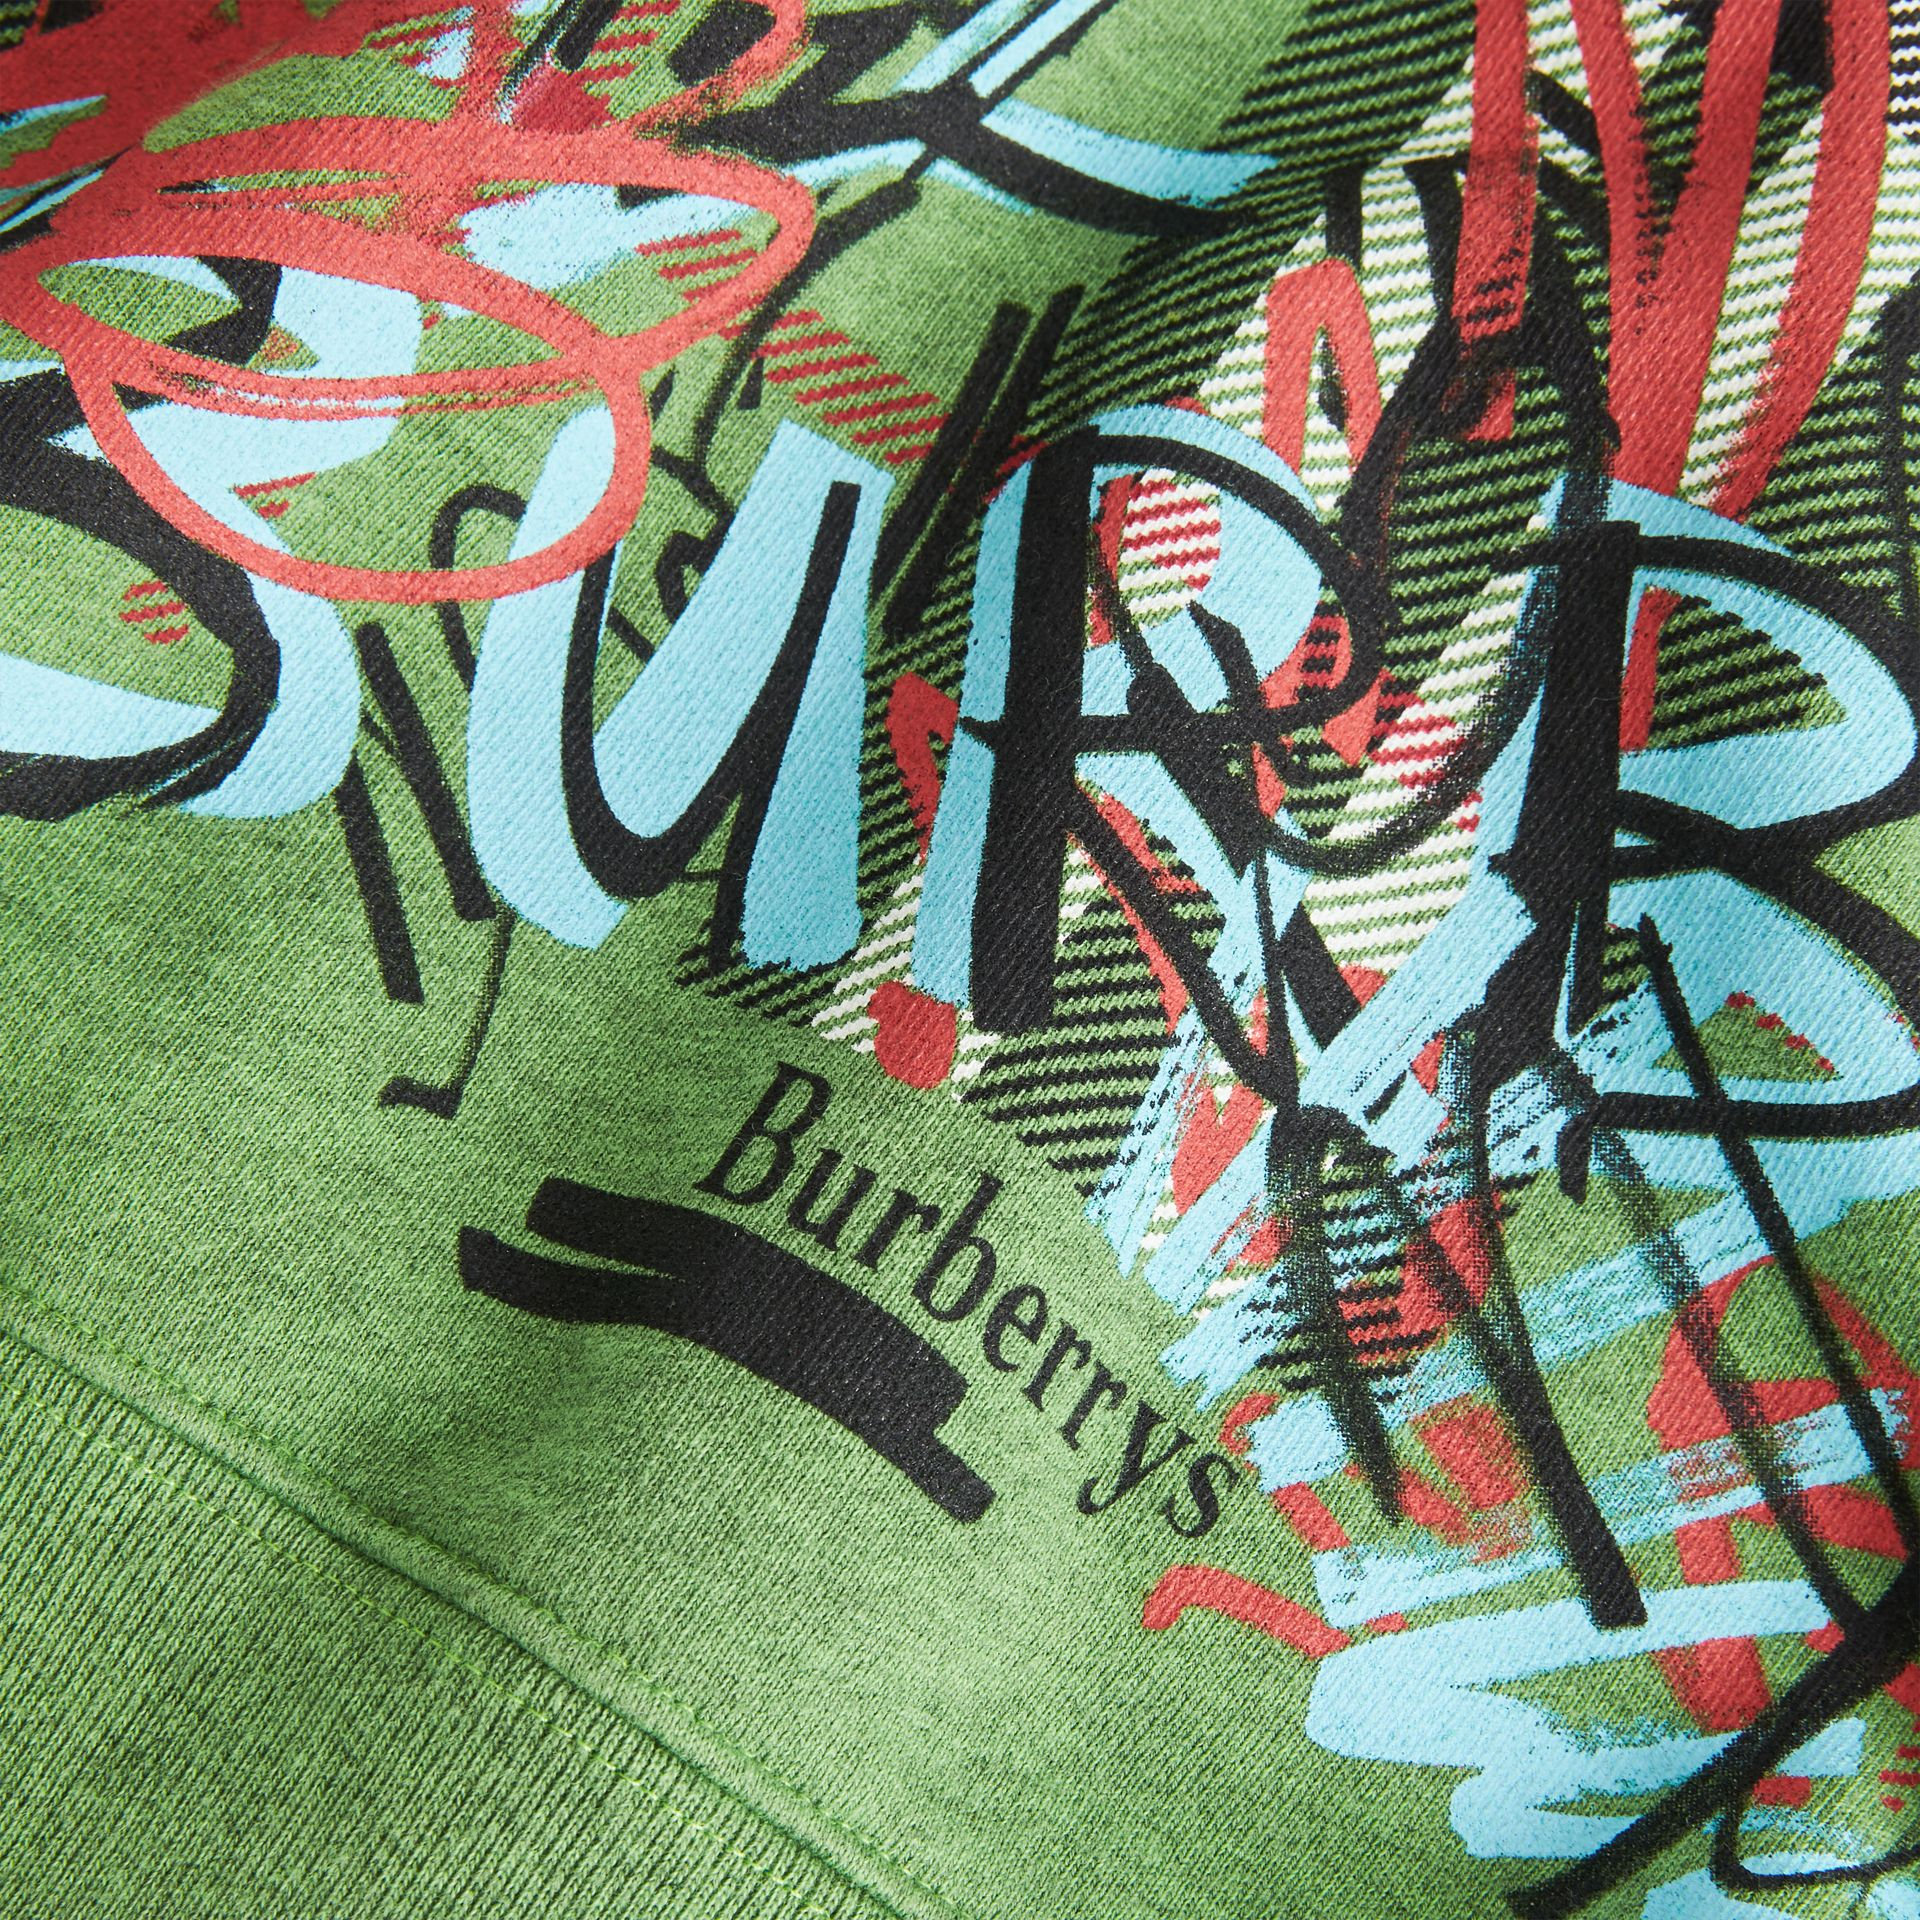 Graffiti Scribble Check Print Cotton Dress in Lime Green | Burberry - gallery image 1